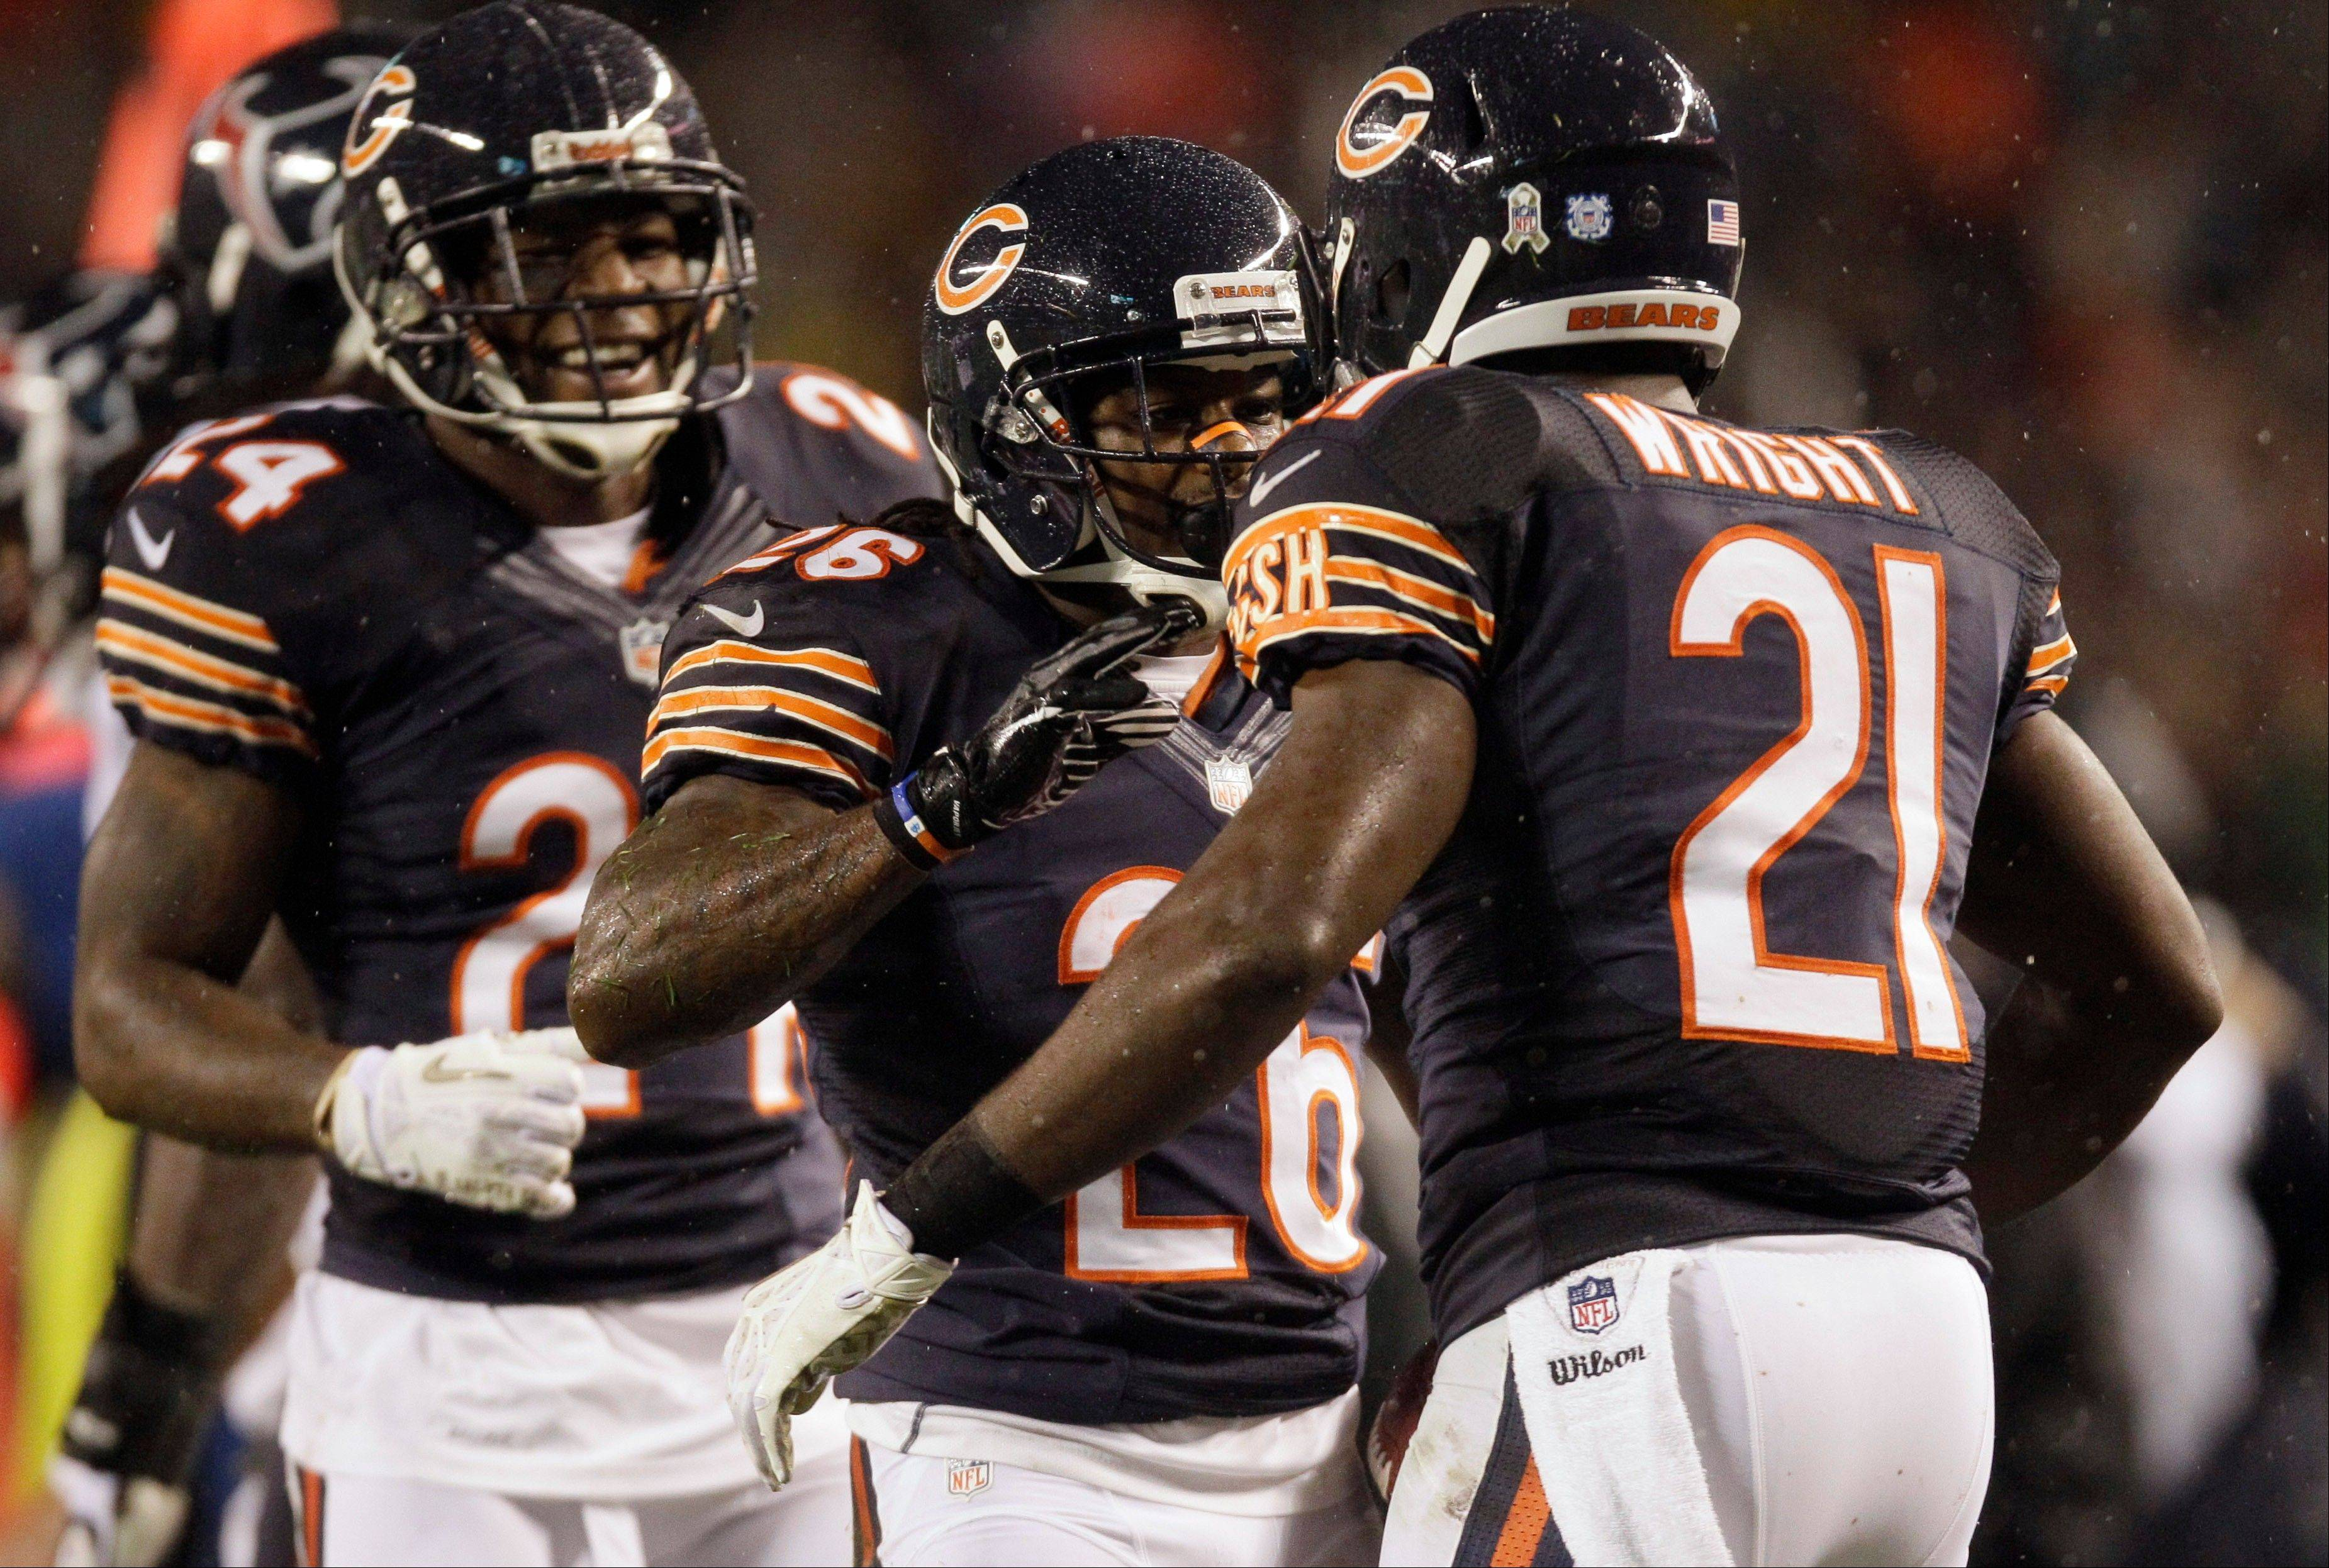 Bears cornerback Tim Jennings (26) celebrates his interception against the Houston Texans with teammates Kelvin Hayden (24) and Major Wright (21) in the first half an NFL football game in Chicago, Sunday, Nov. 11, 2012.